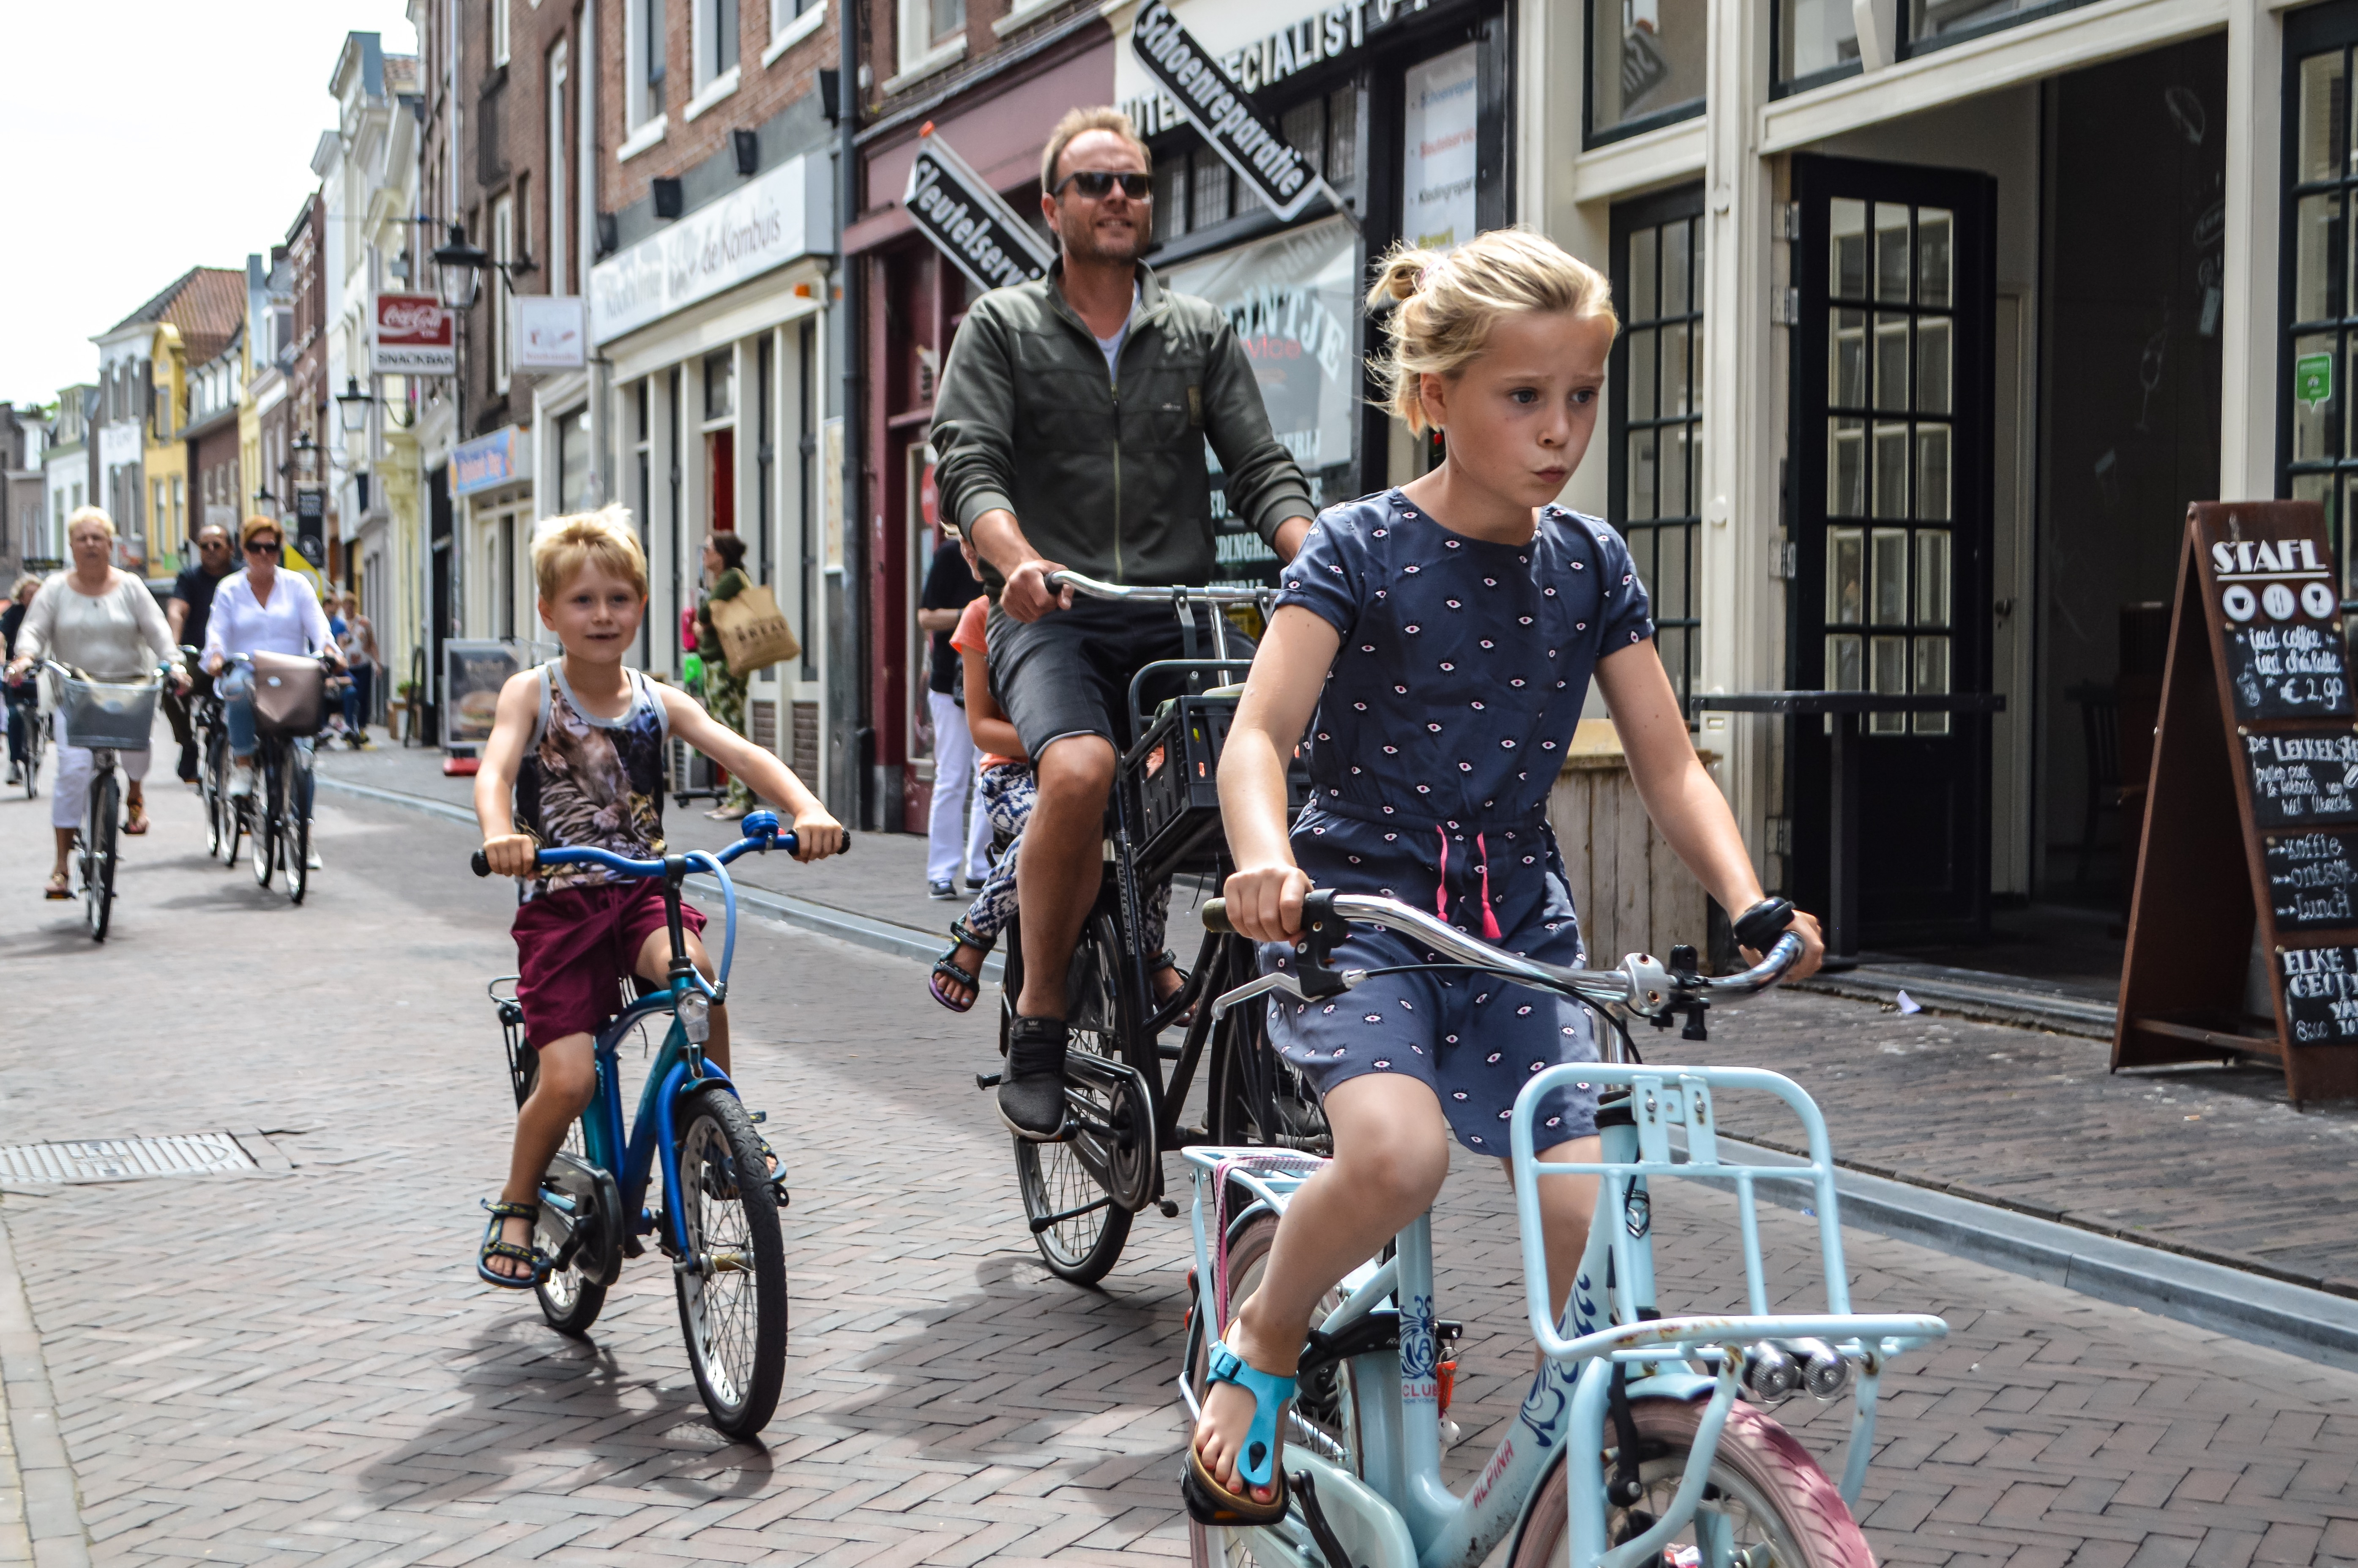 No helmets, no problem: how the Dutch created a casual biking culture